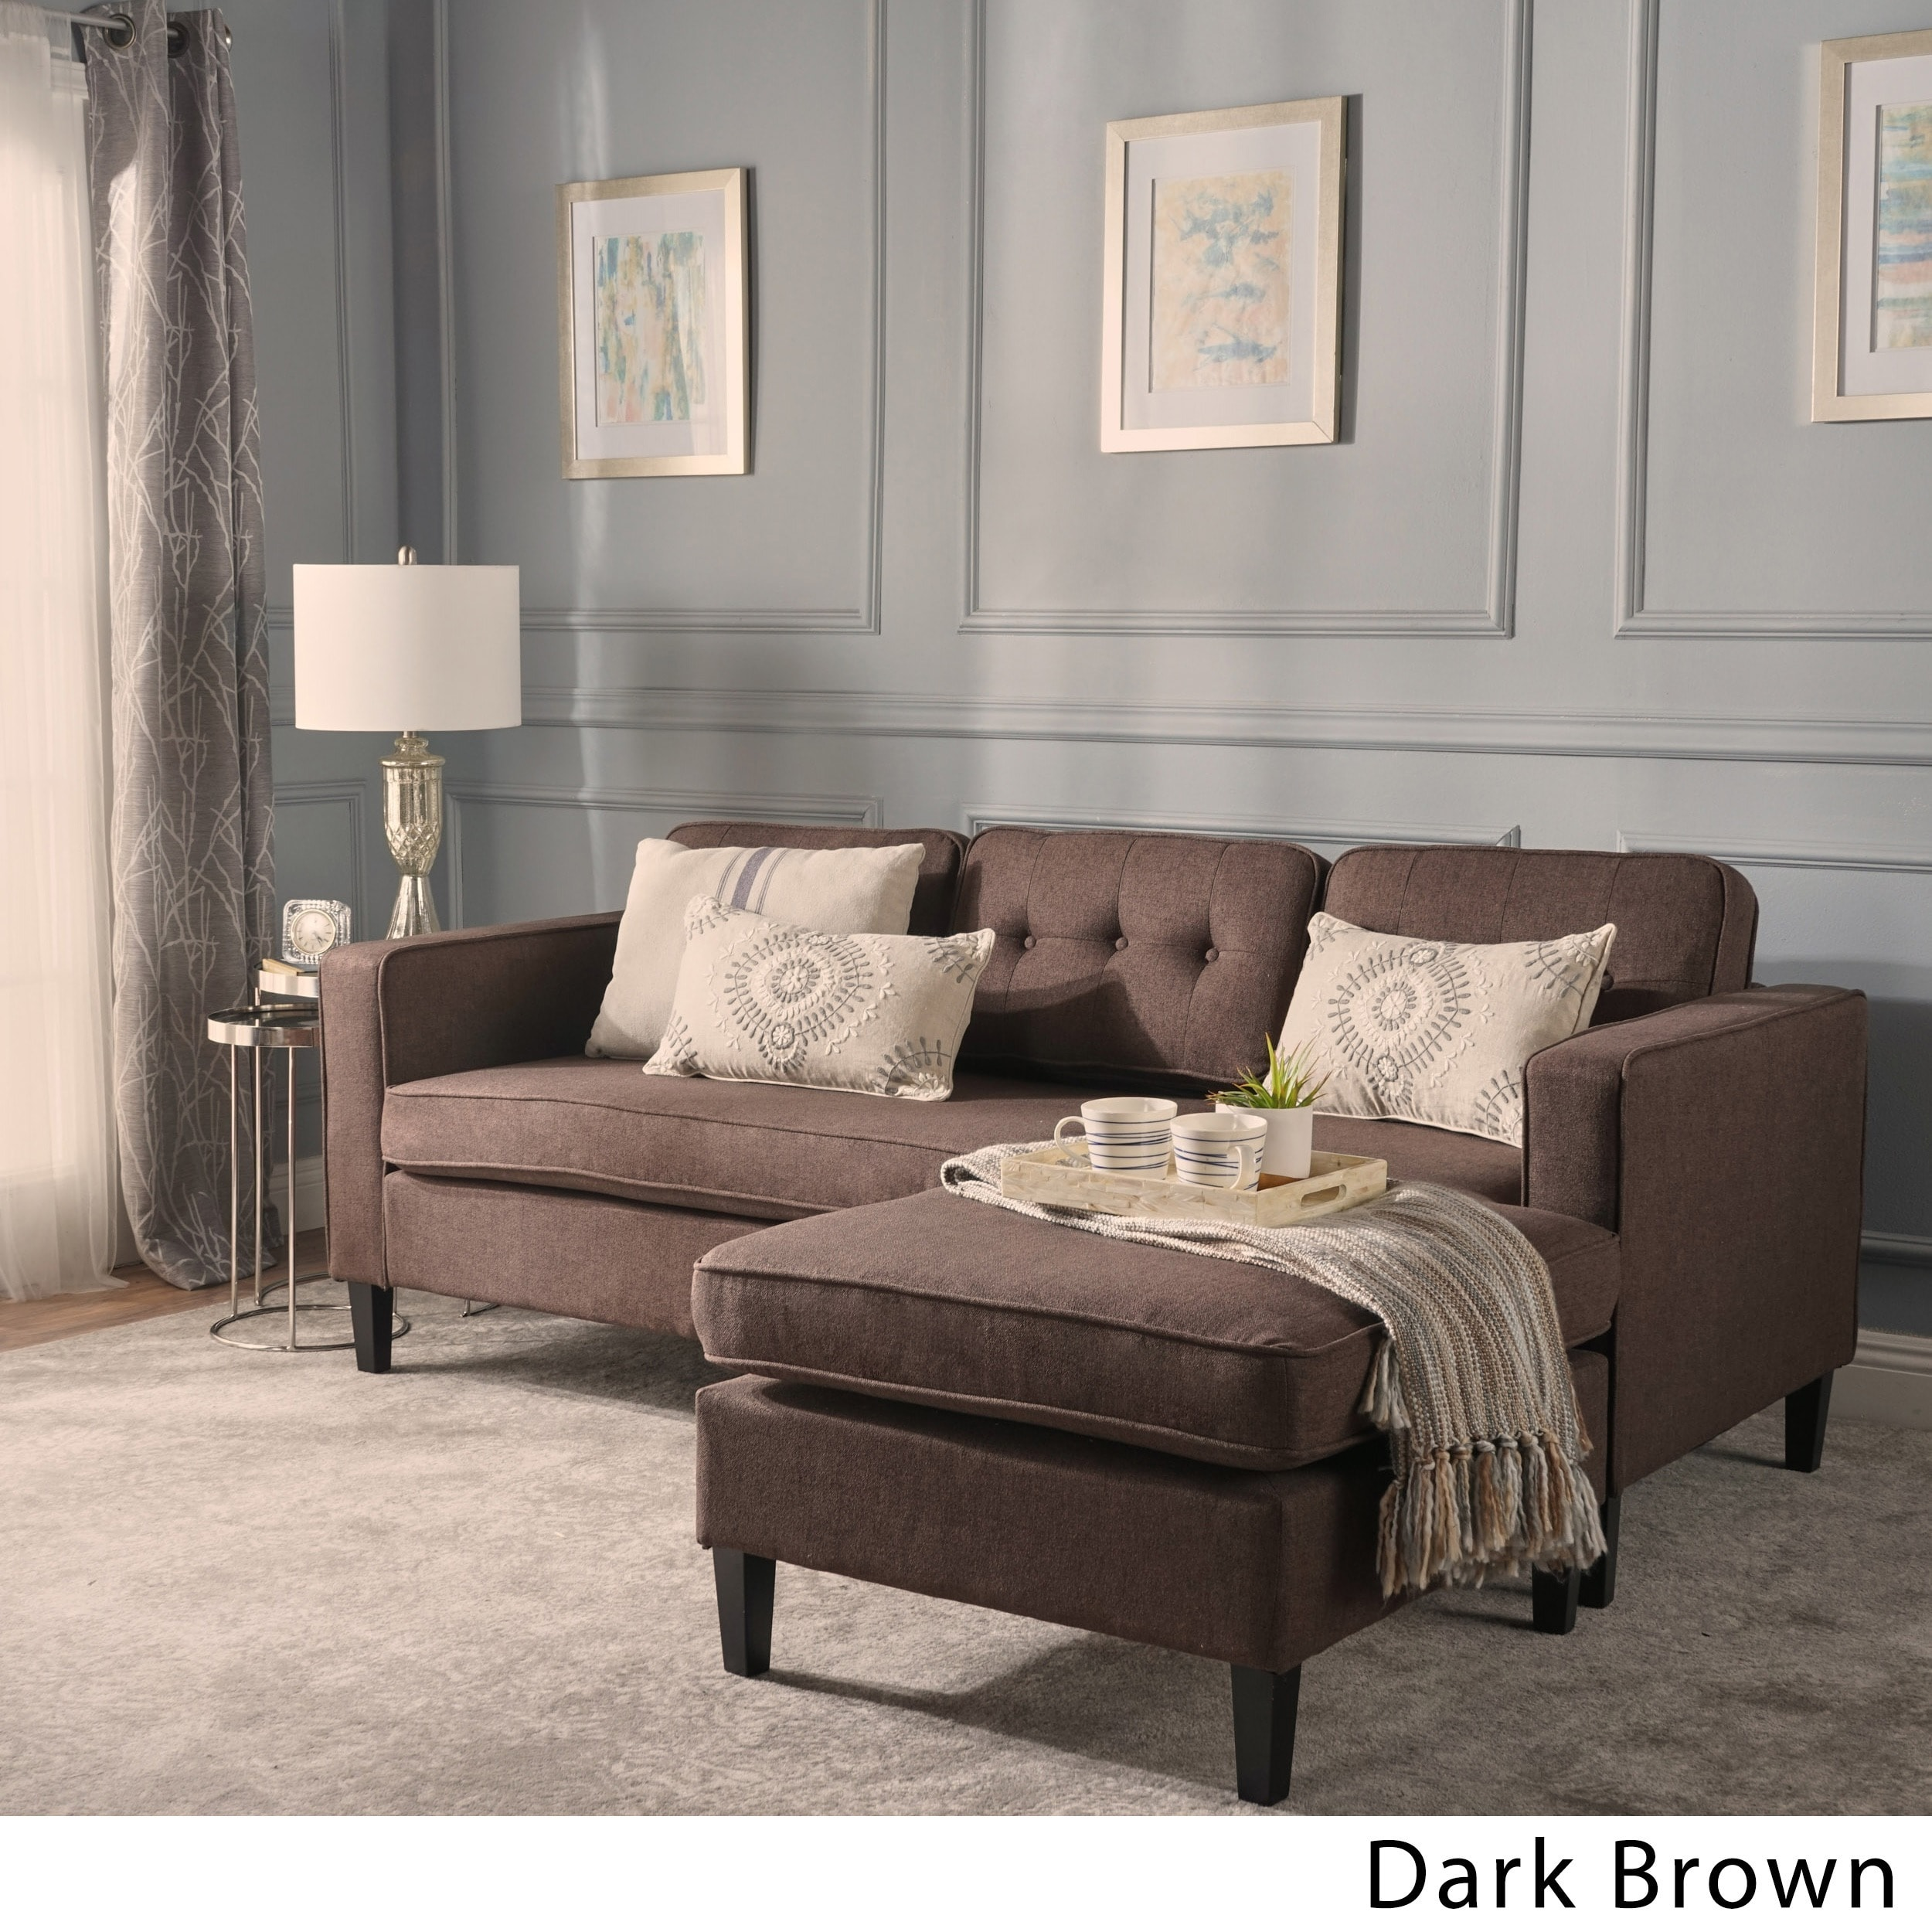 Christopher Knight Home Wilder Mid-century Modern 2-piece Fabric Chaise Sectional Sofa by